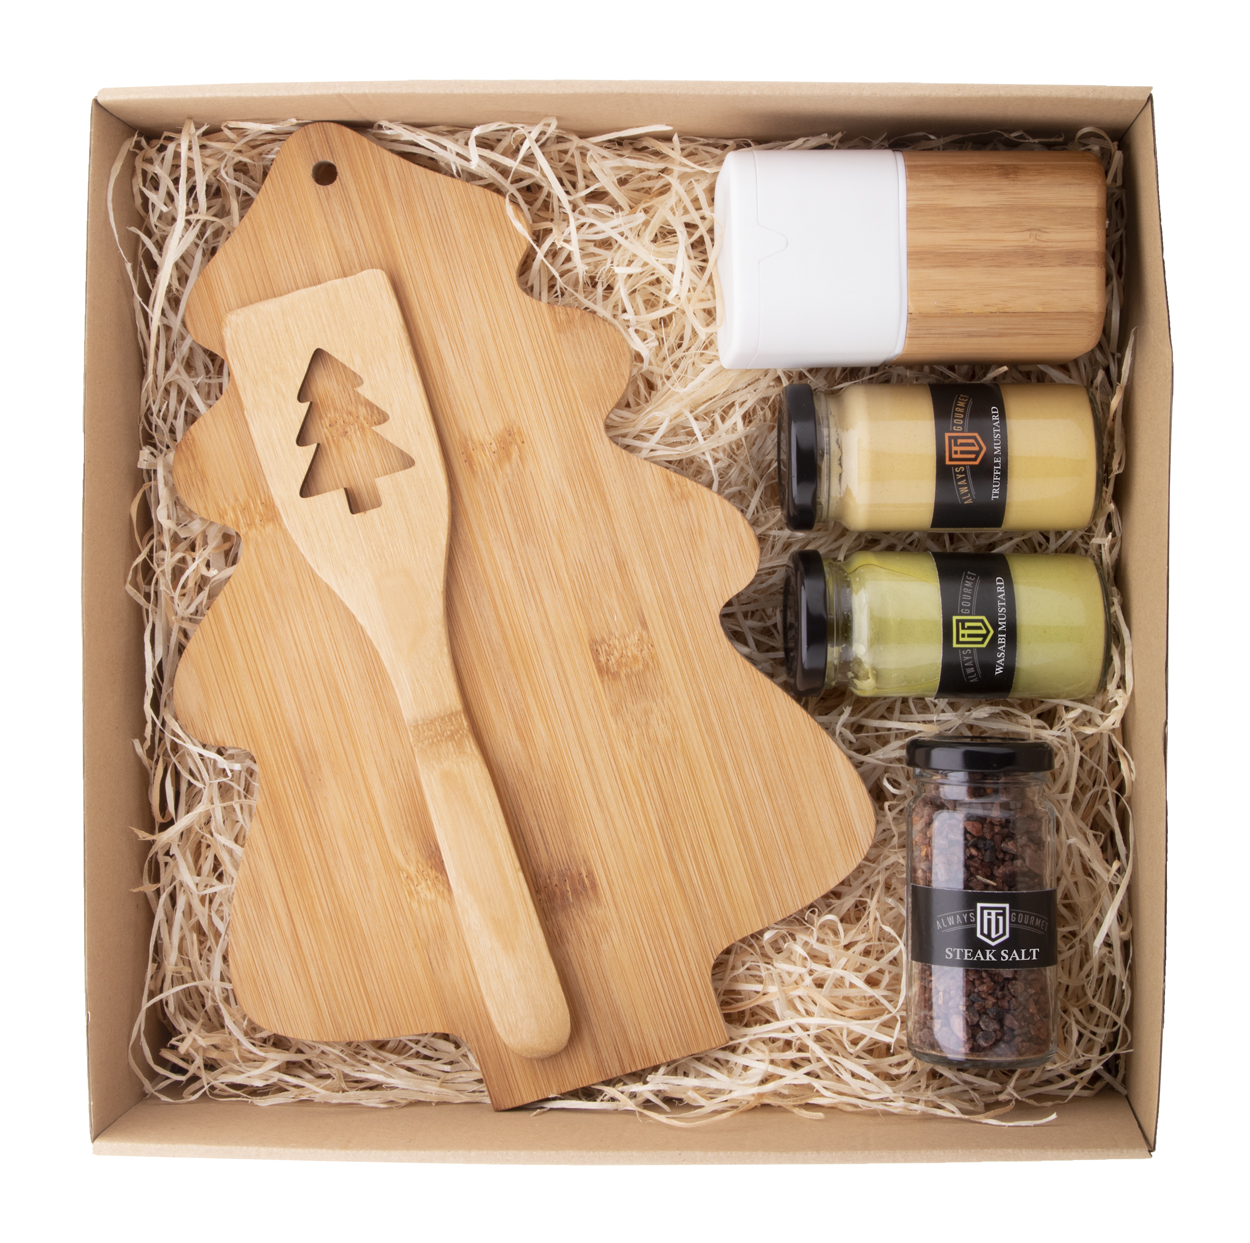 Manty gourmet gift set